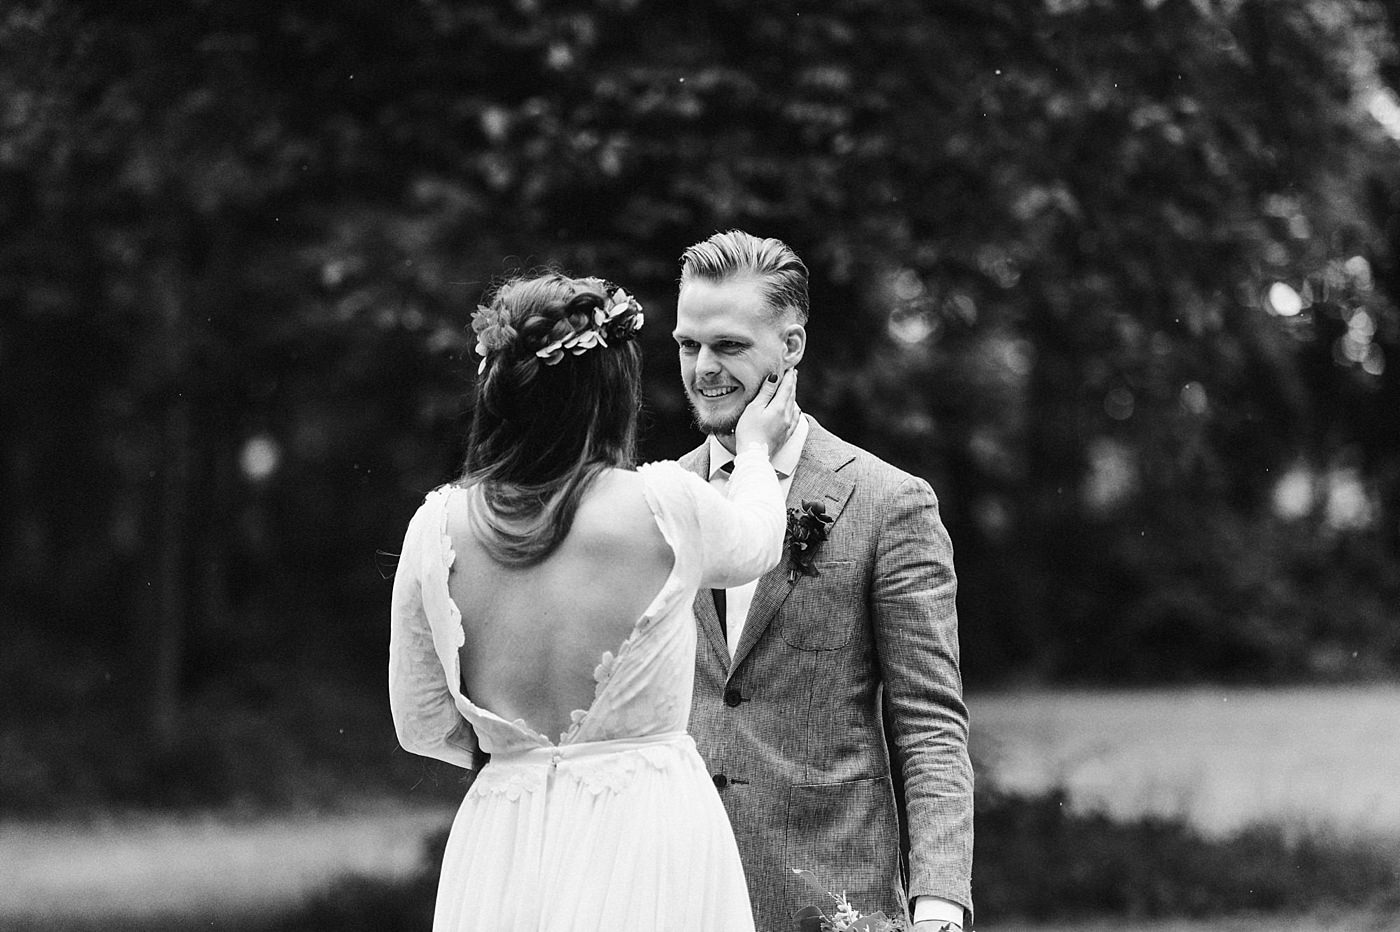 urban-elopement-wedding-120 Merve & Nils emotionales Elopement - Wedding Wesel & Schottlandurban elopement wedding 120 1